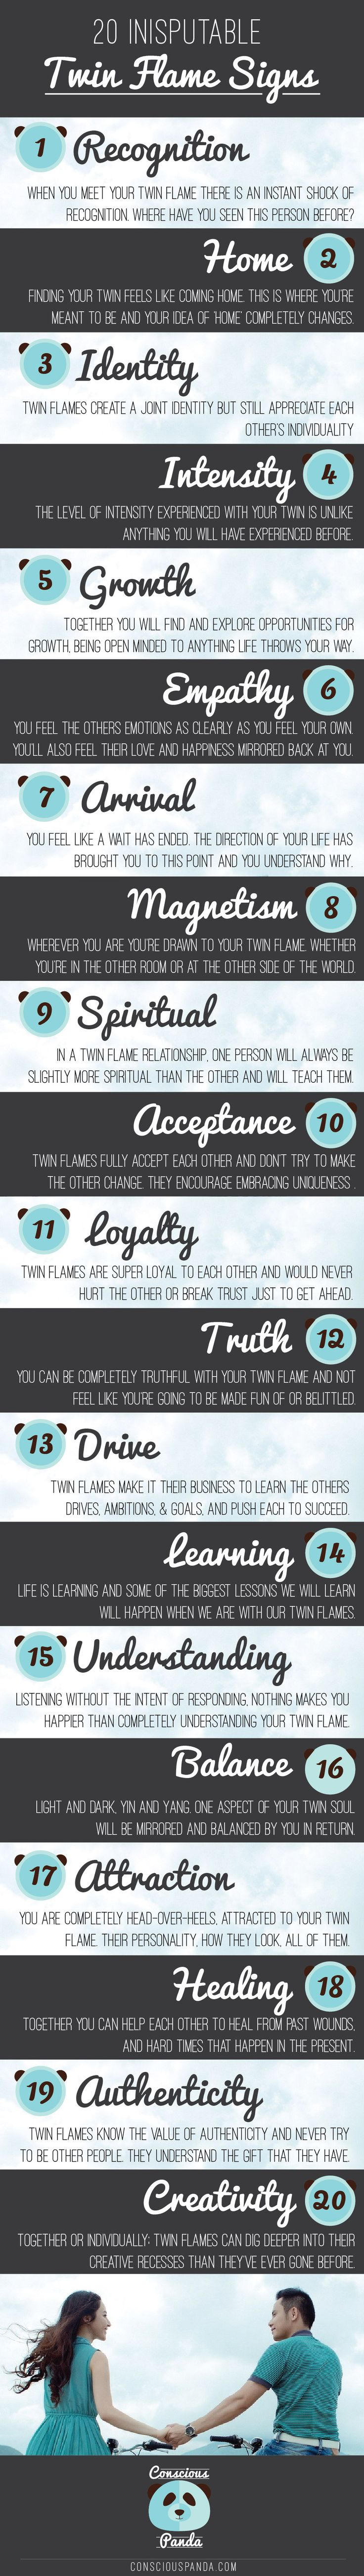 "20 Indisputable Twin Flame Signs - ""1) Recognition. 2) Home. 3) Identity. 4) Intensity. 5) Growth. 6) Empathy. 7) Arrival. 8) Magnetism. 9) Spiritual. 10) Acceptance. 11) Loyalty. 12) Truth. 13) Drive. 14) Learning. 15) Understanding. 16) Balance. 17) Attraction. 18) Healing. 19) Authenticity. 20) Creativity."""